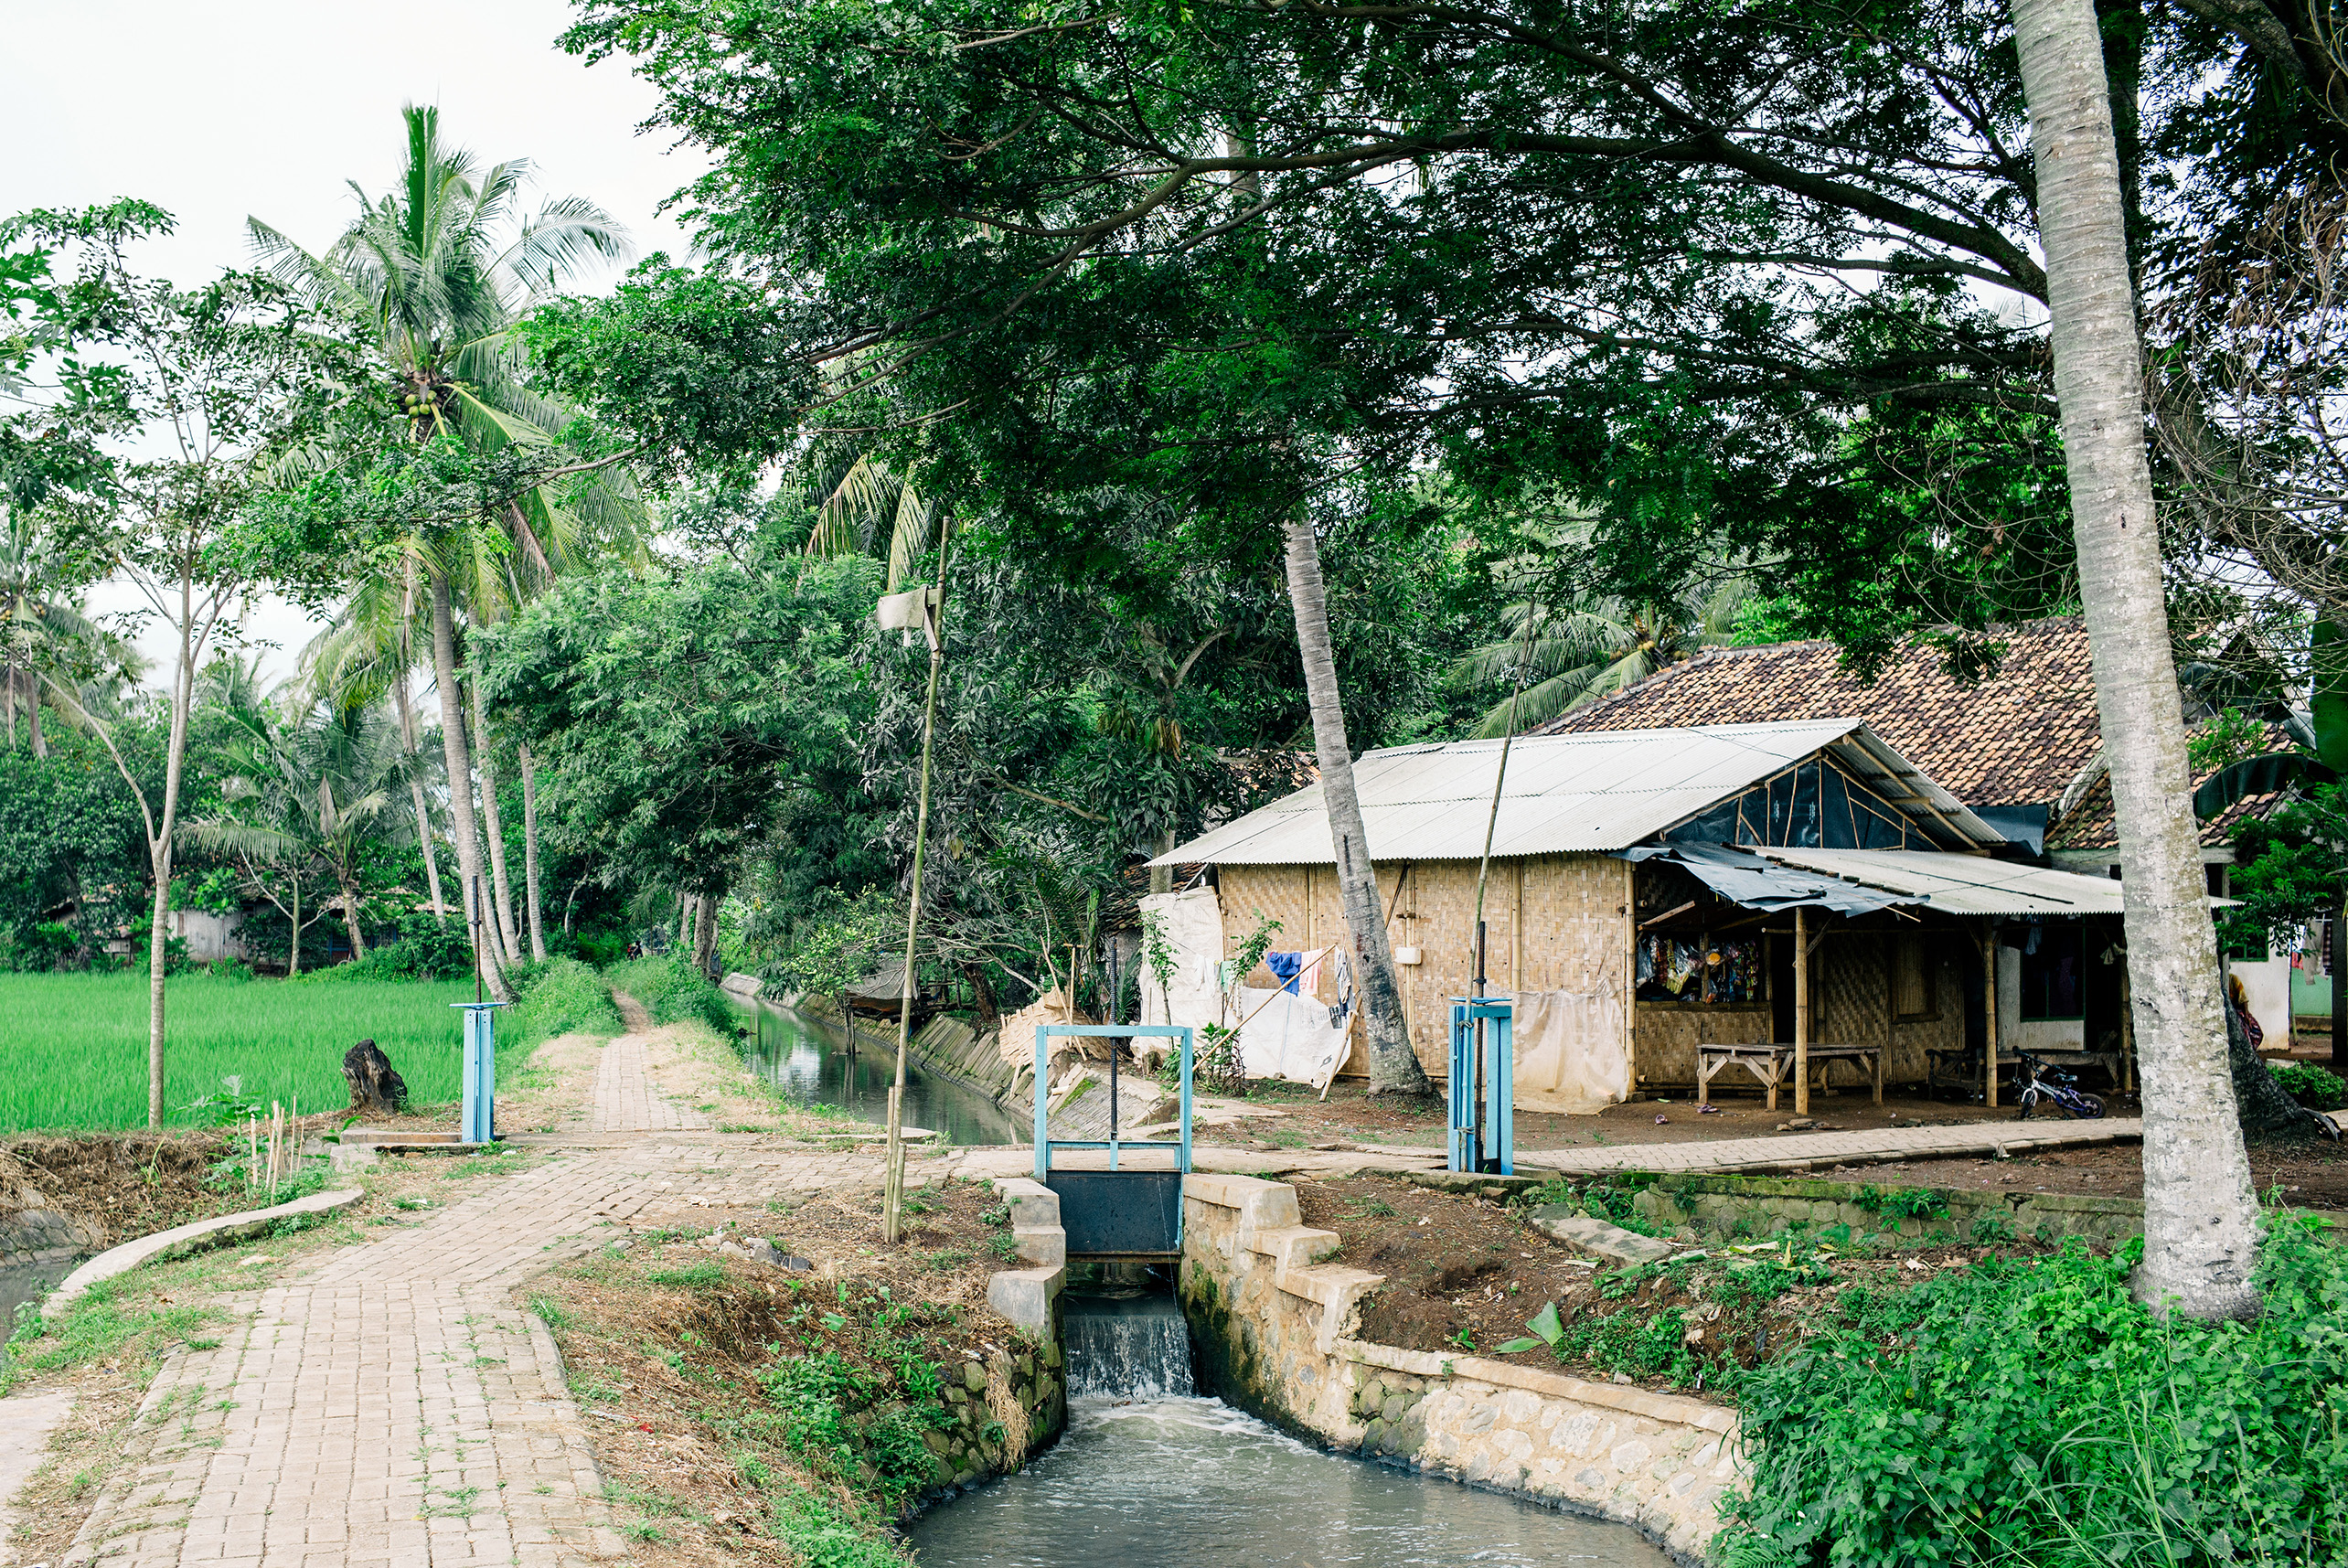 Sarmanah's property in Indonesia